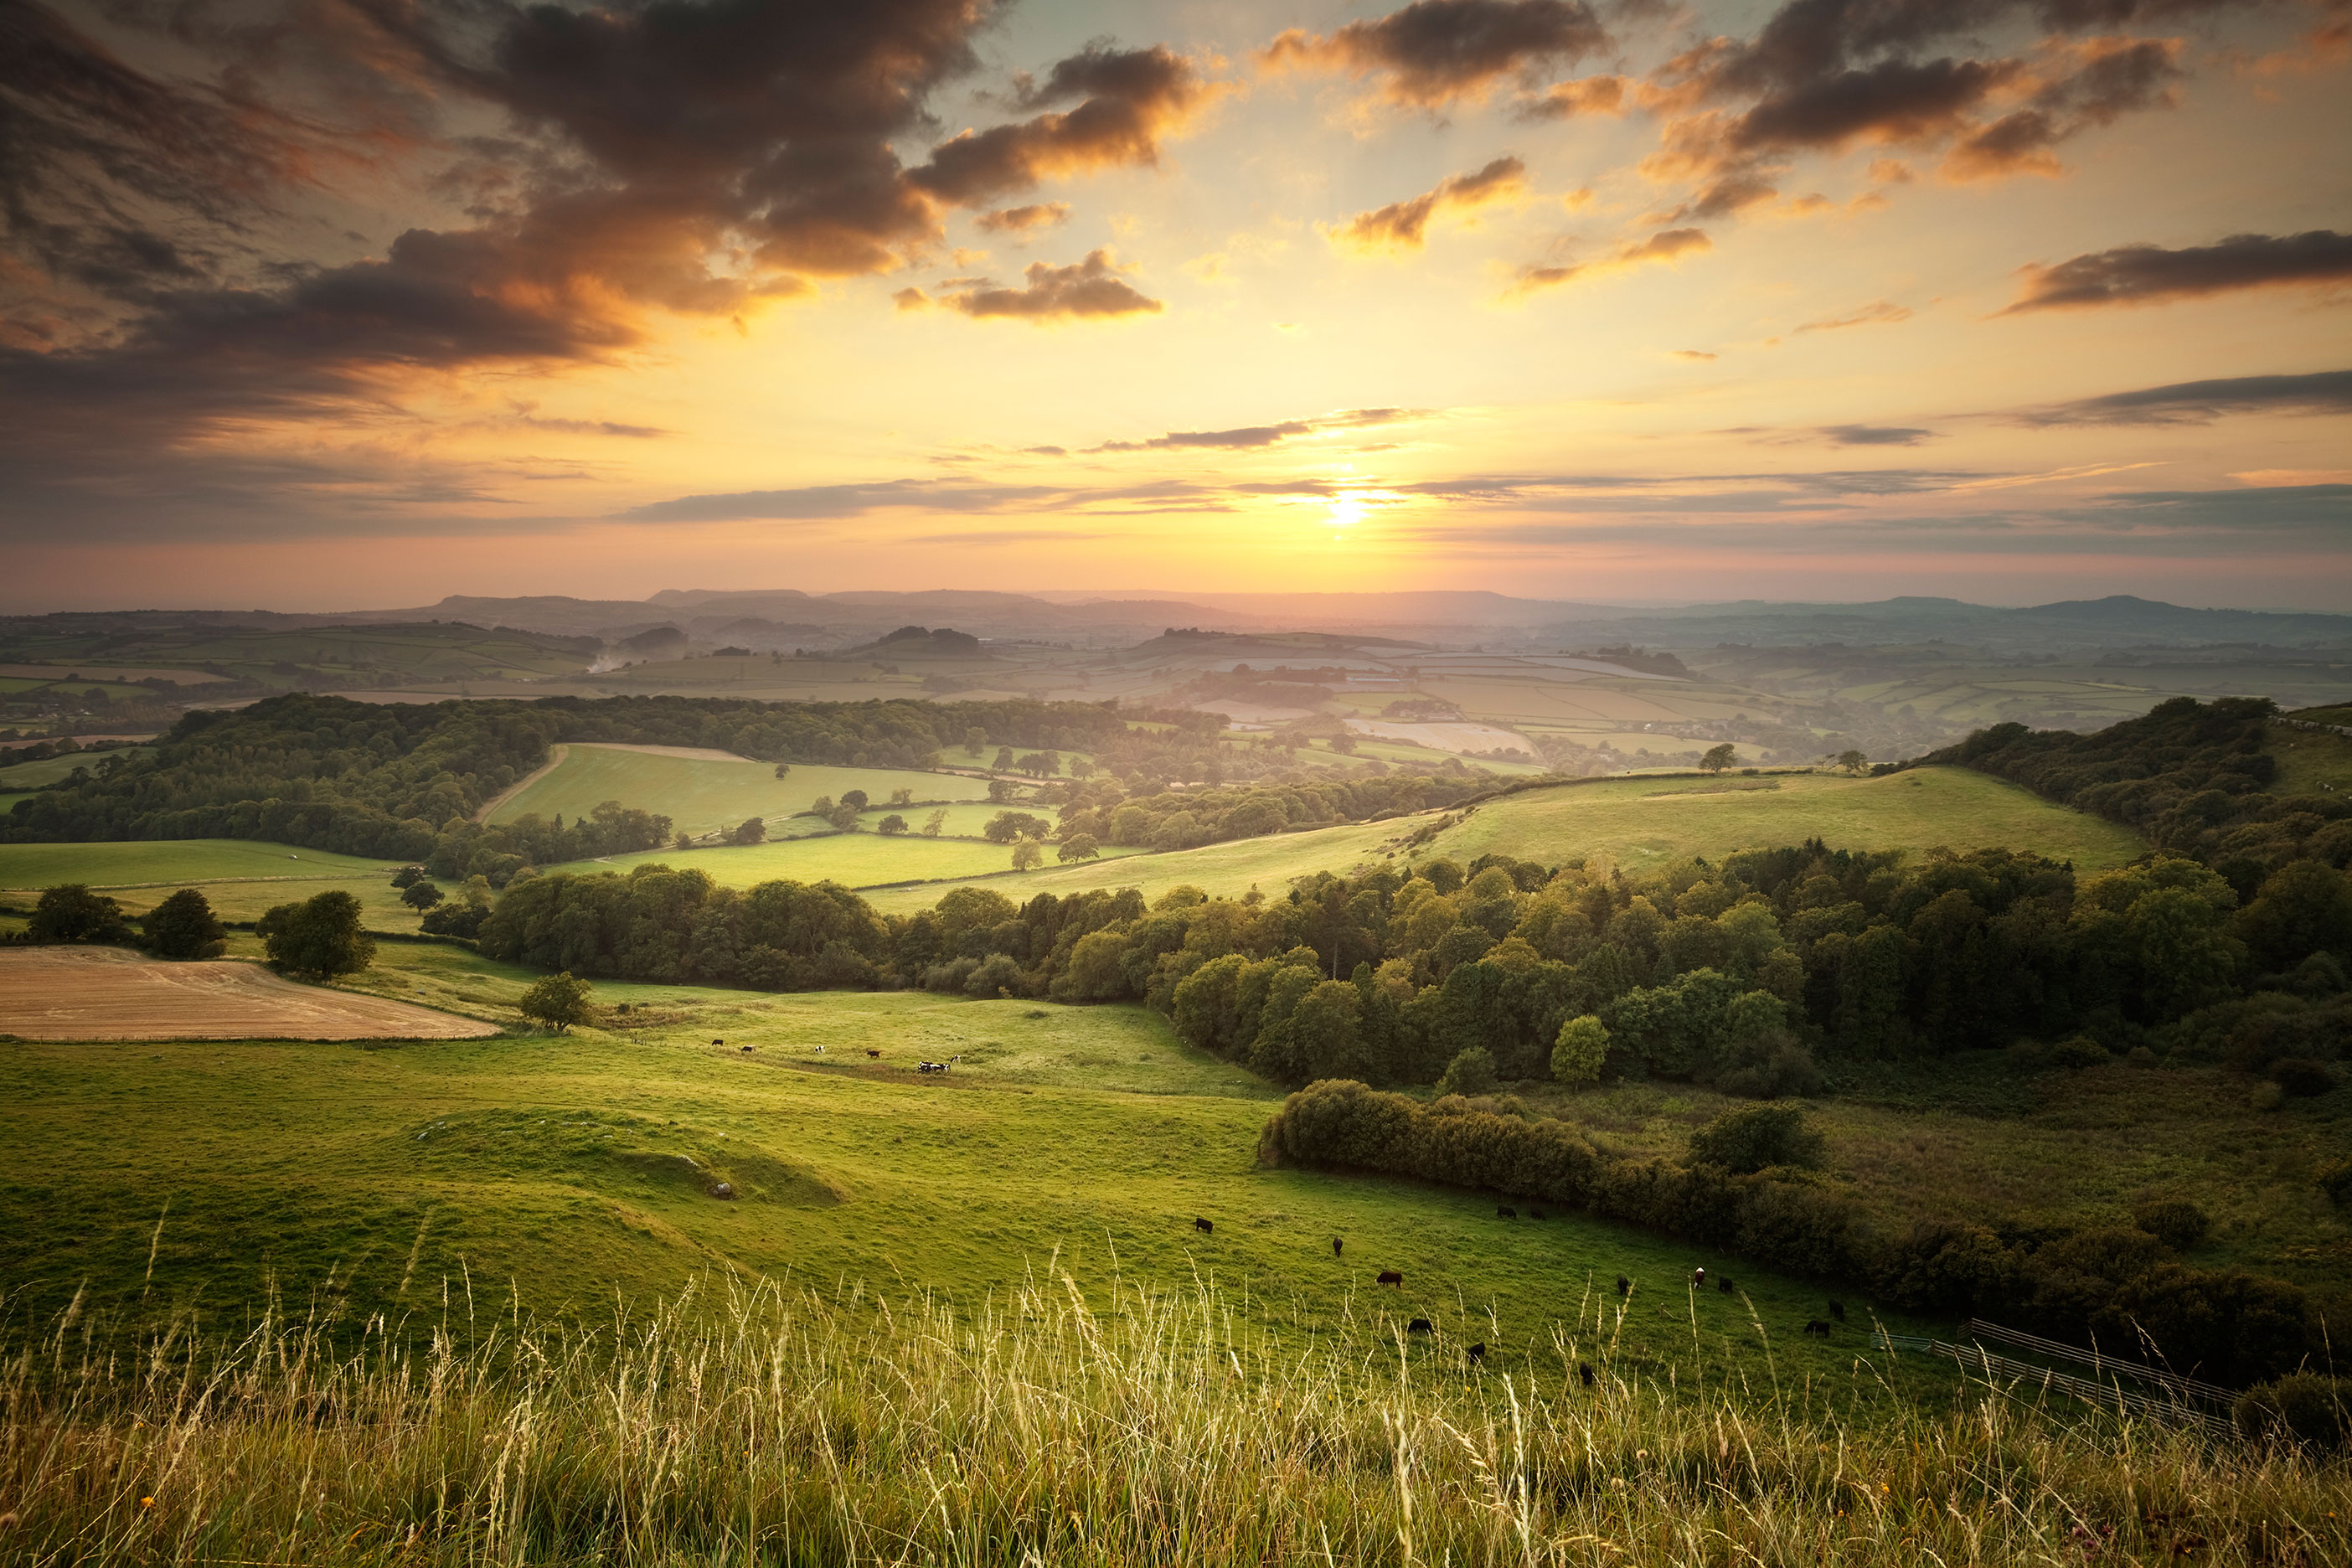 A beautiful sunset over a rural green landscape.